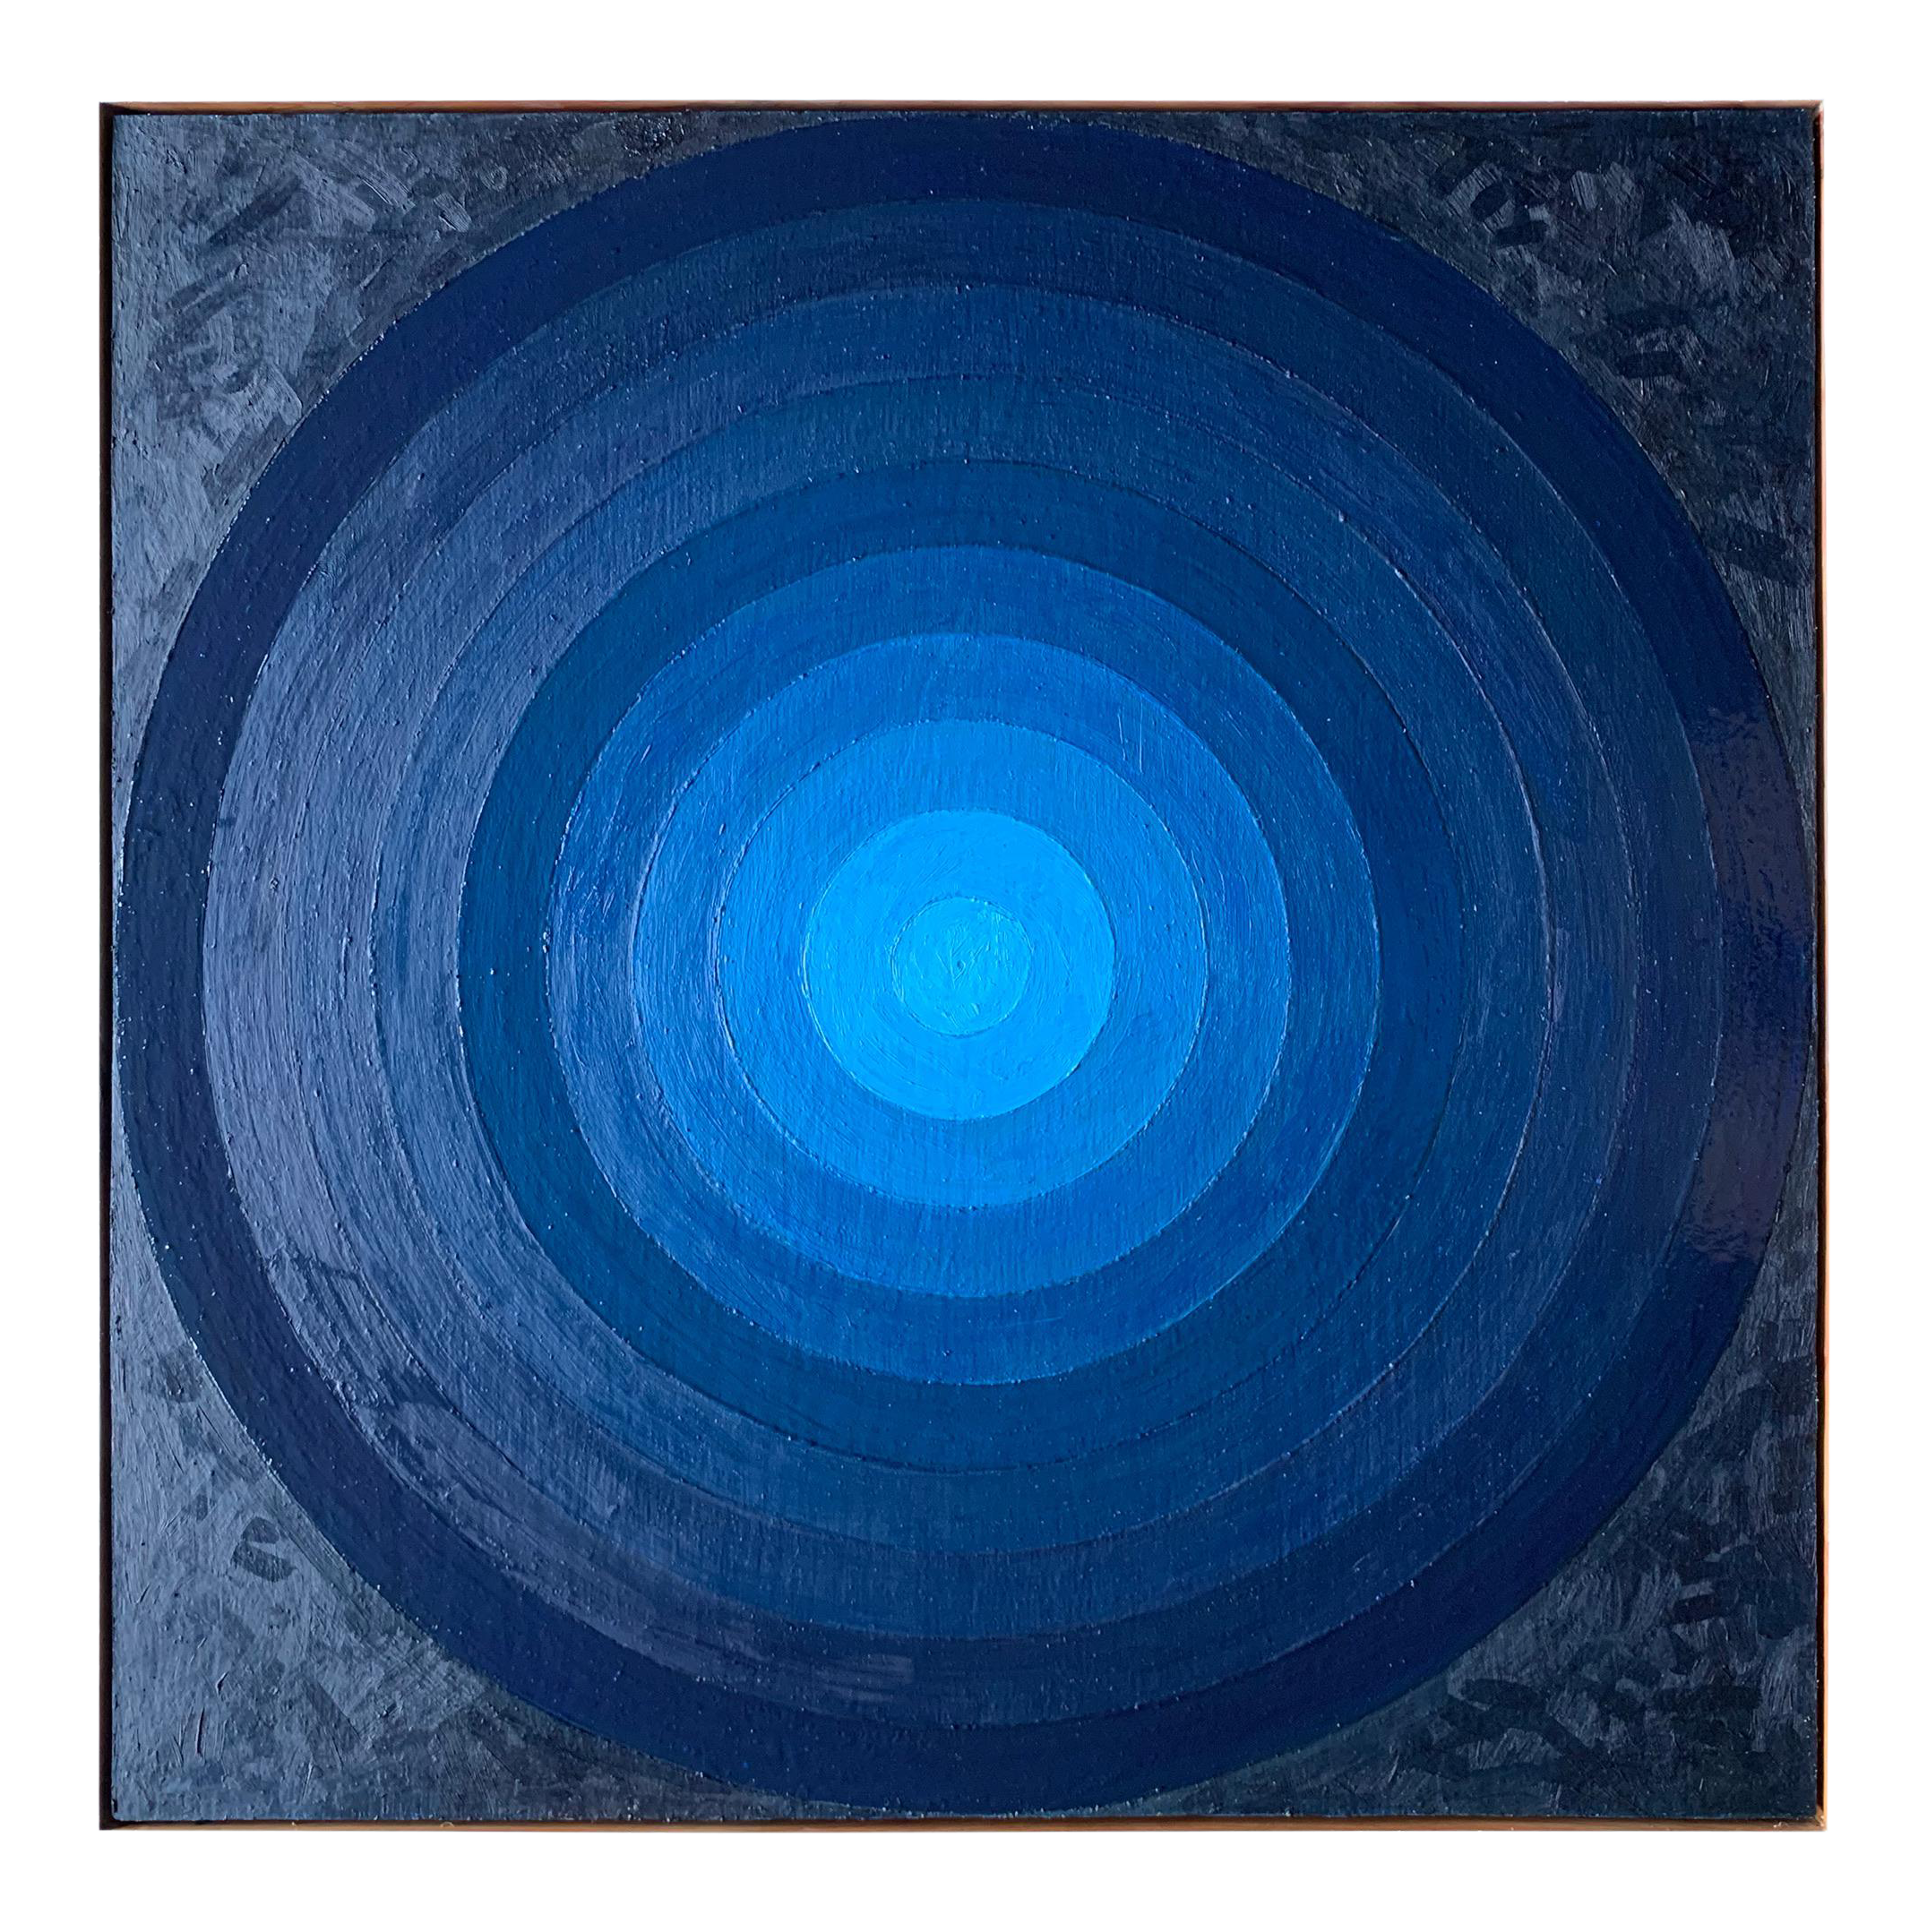 Contemporary Minimal Blue Circle Target Oil Painting Pulse By Jeb Knight In 2020 Oil Painting Blue Painting Painting